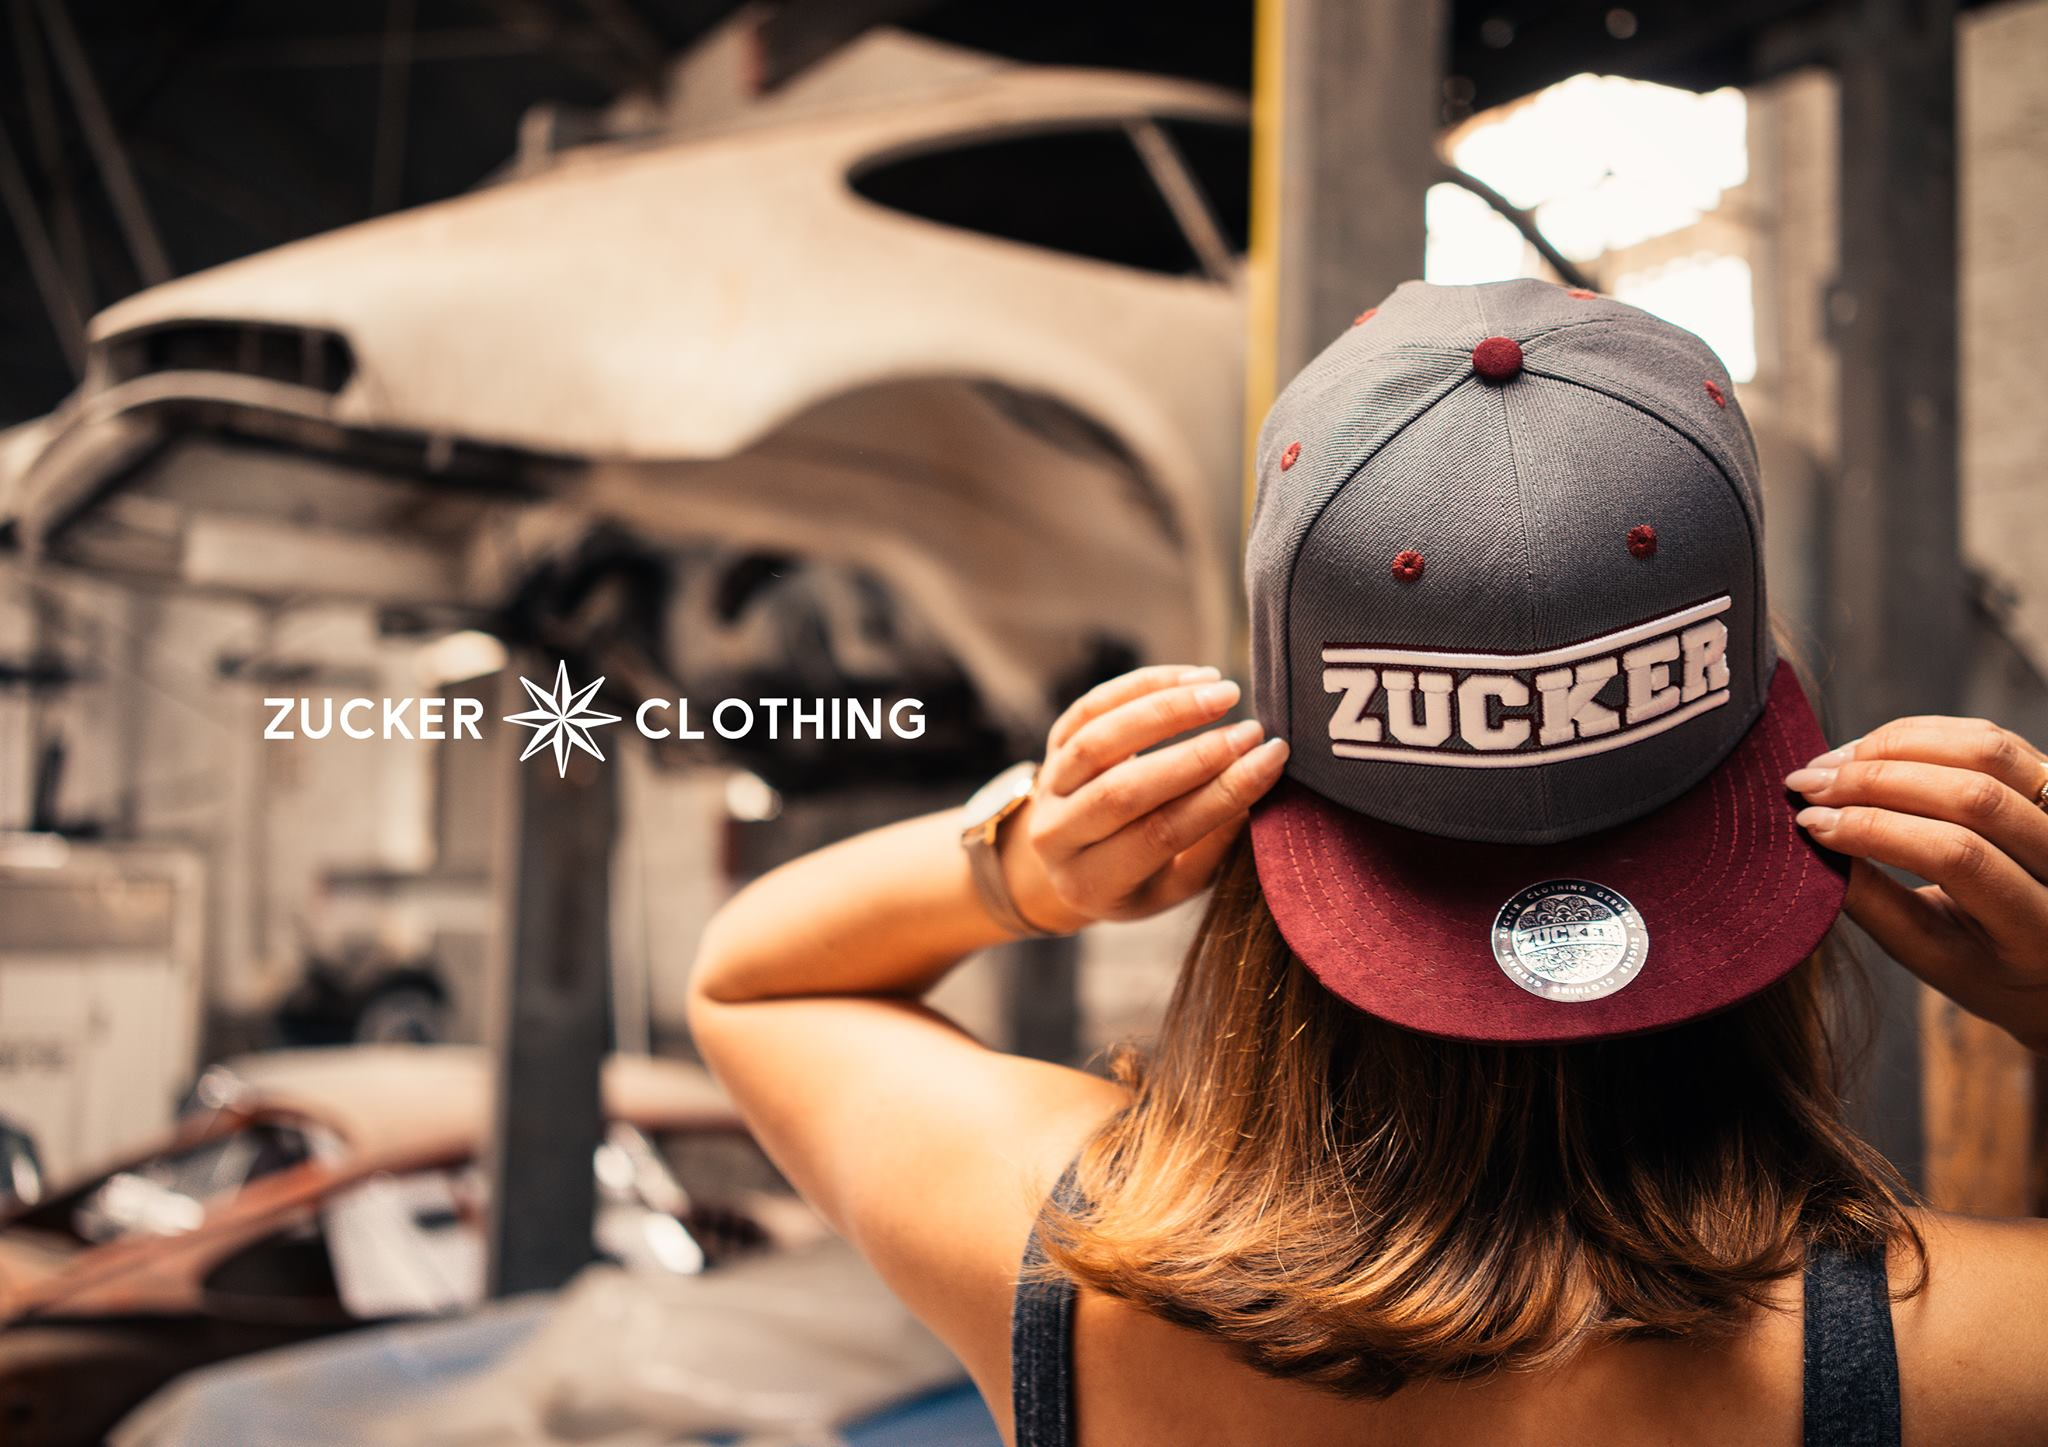 ZUCKER CLOTHING®